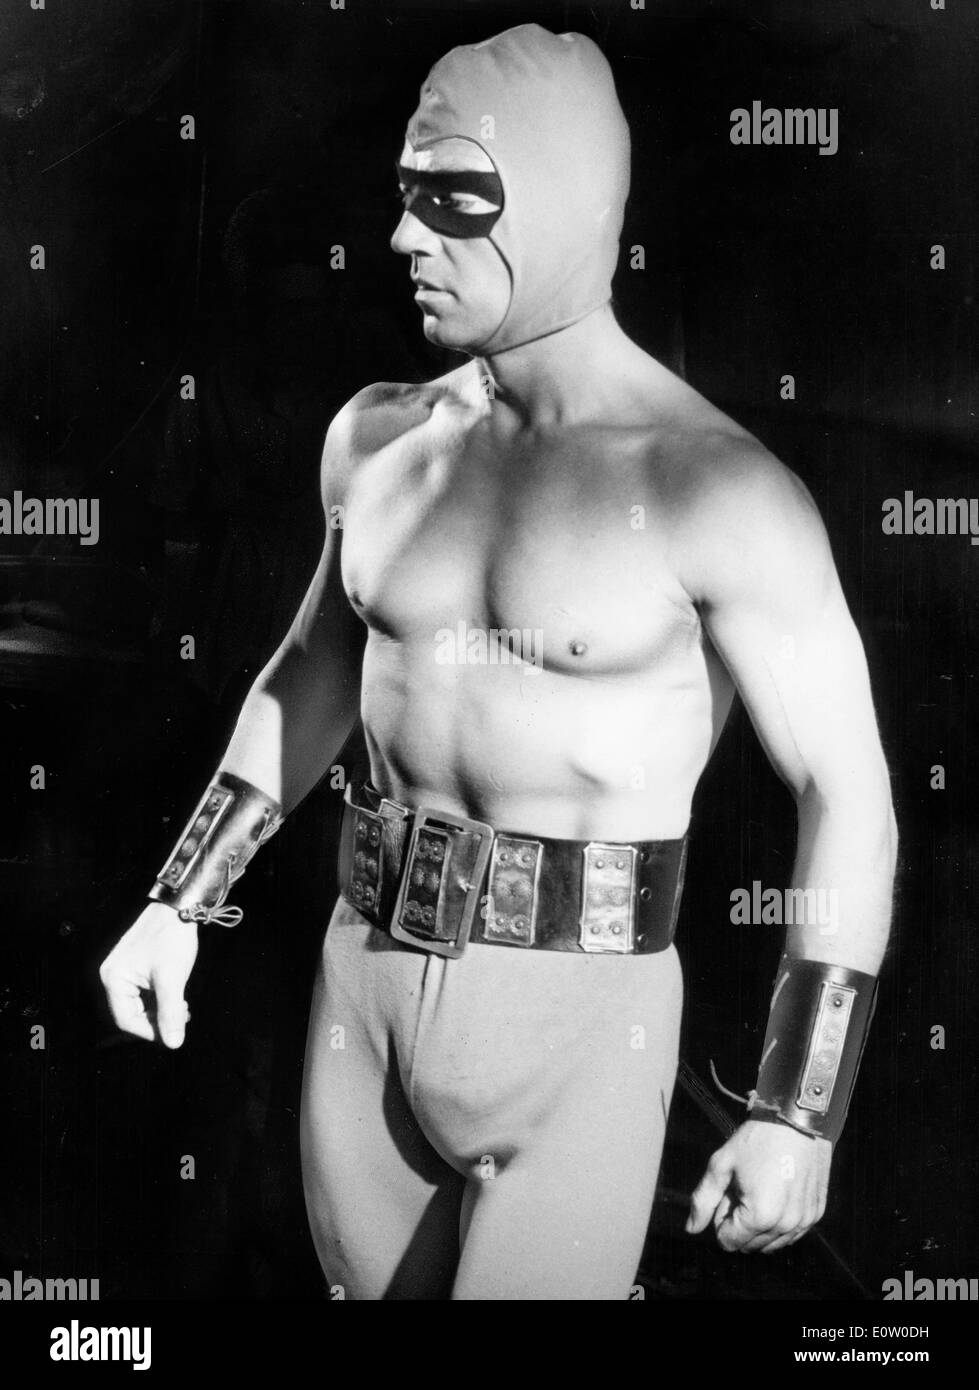 Actor Mickey Hargitay Dressed In A Wrestler Costume Stock ...